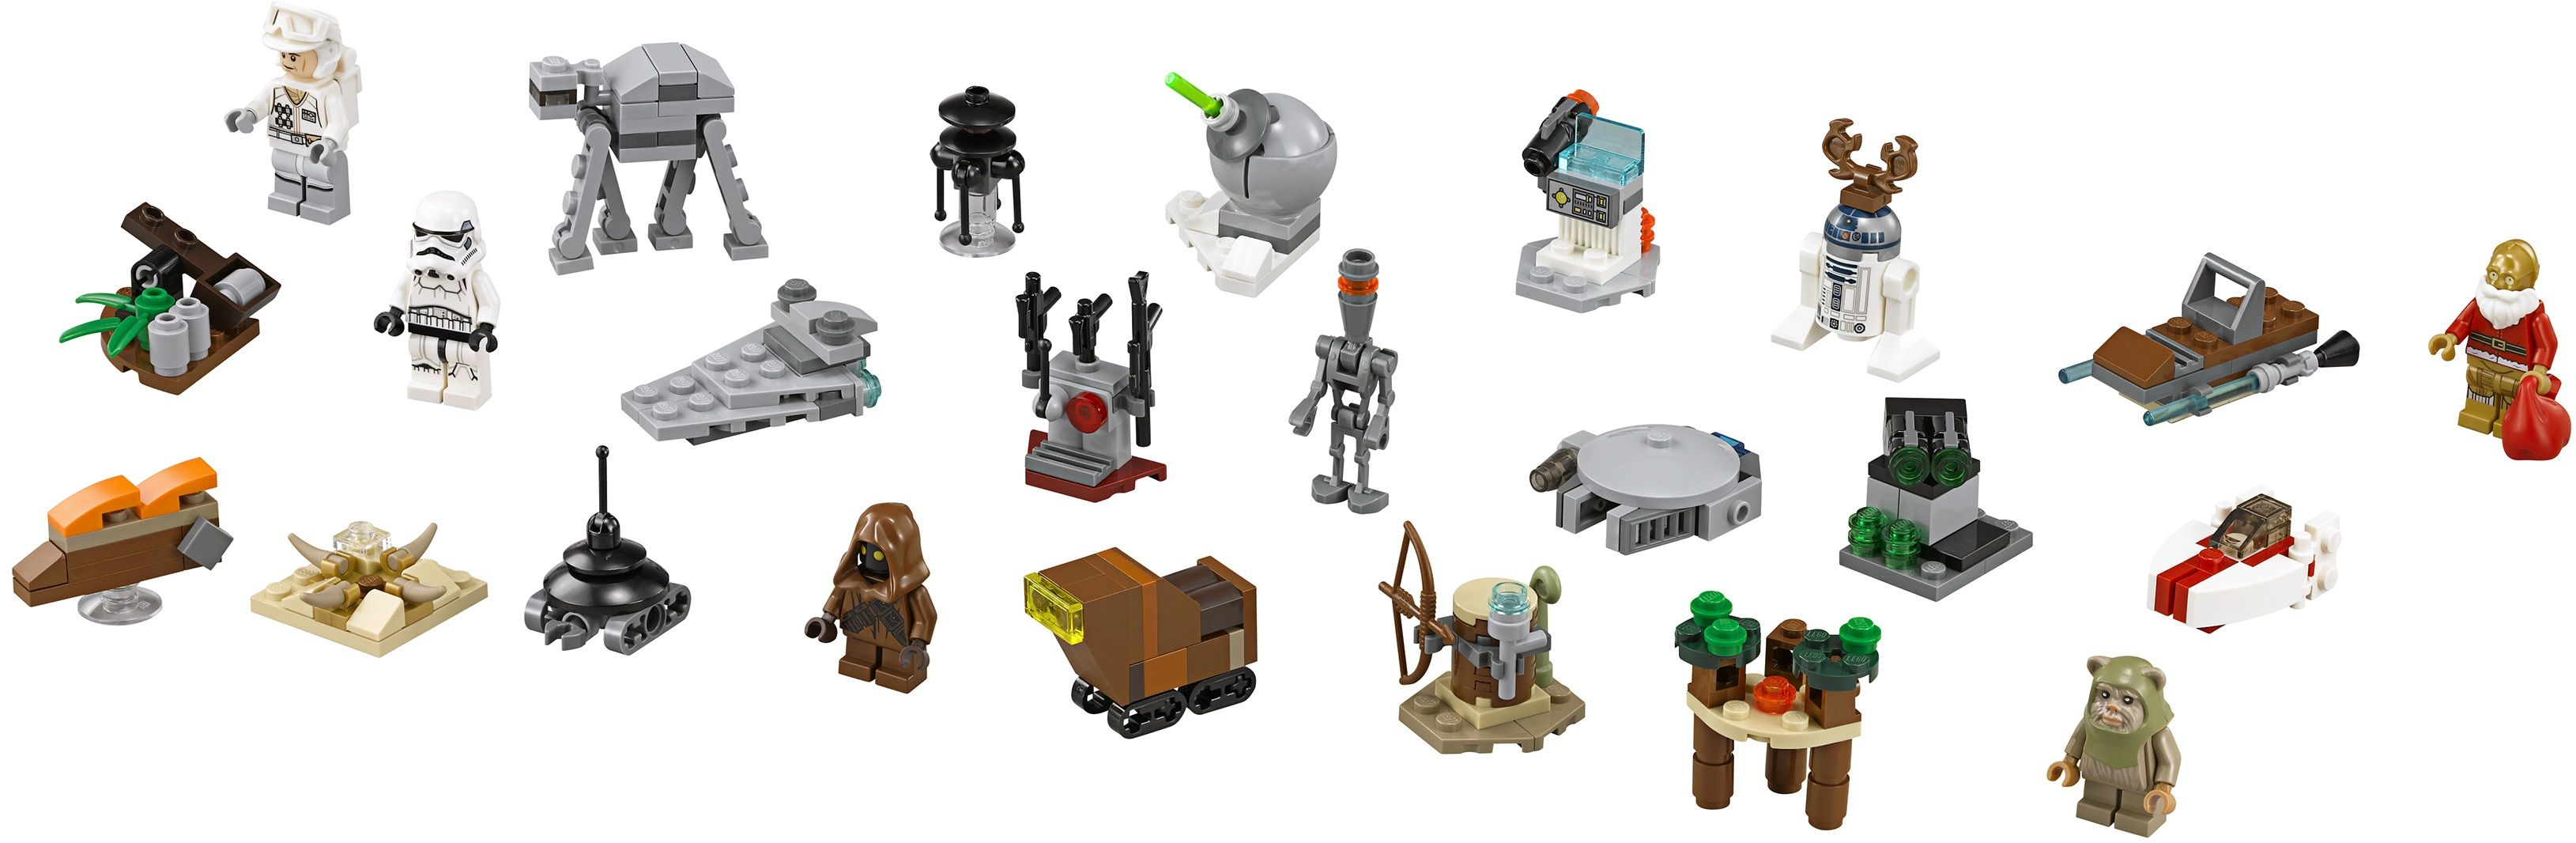 Breaking News! New Star Wars Lego Sets for The Force Awakens Leaked ...